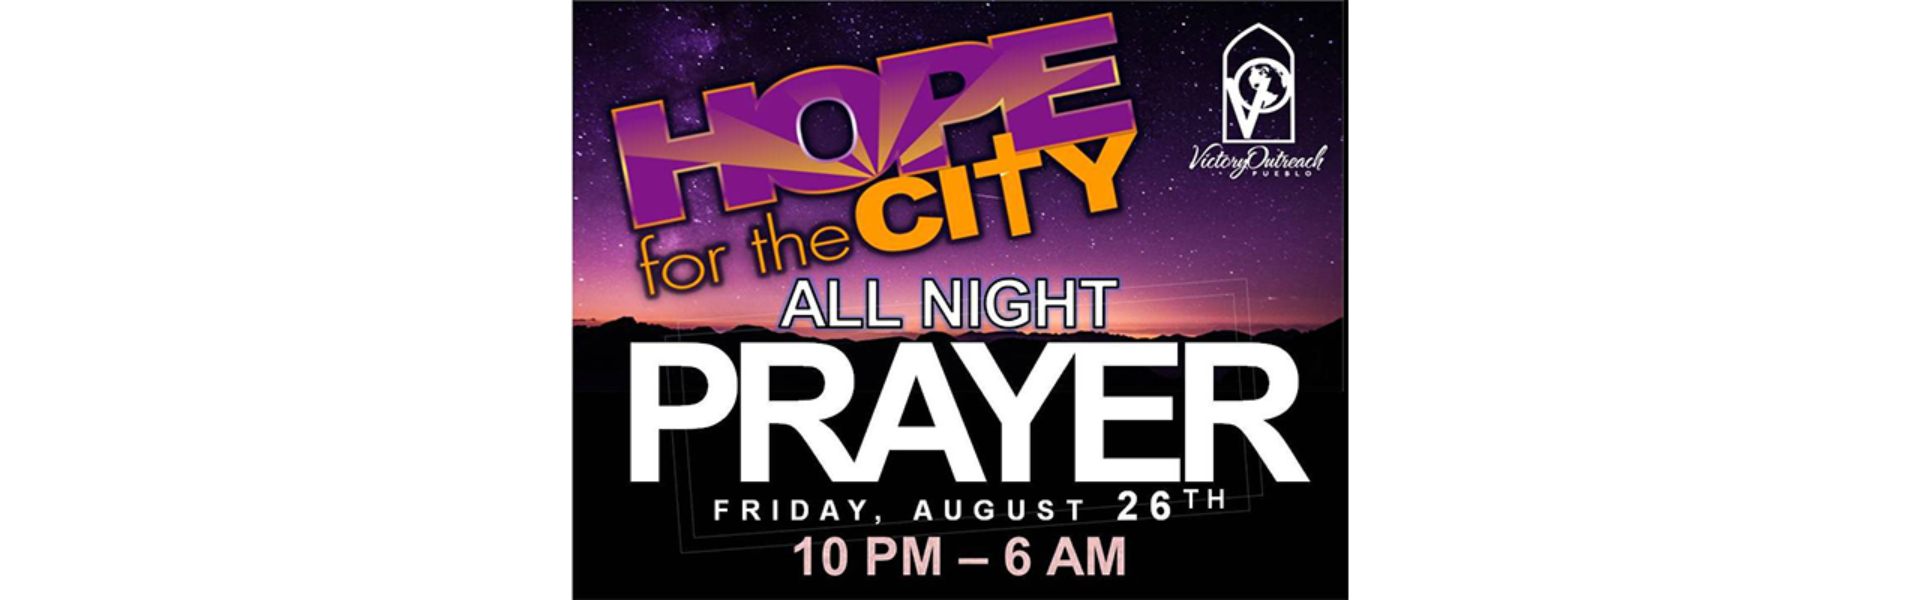 Hope For The City All Night Prayer